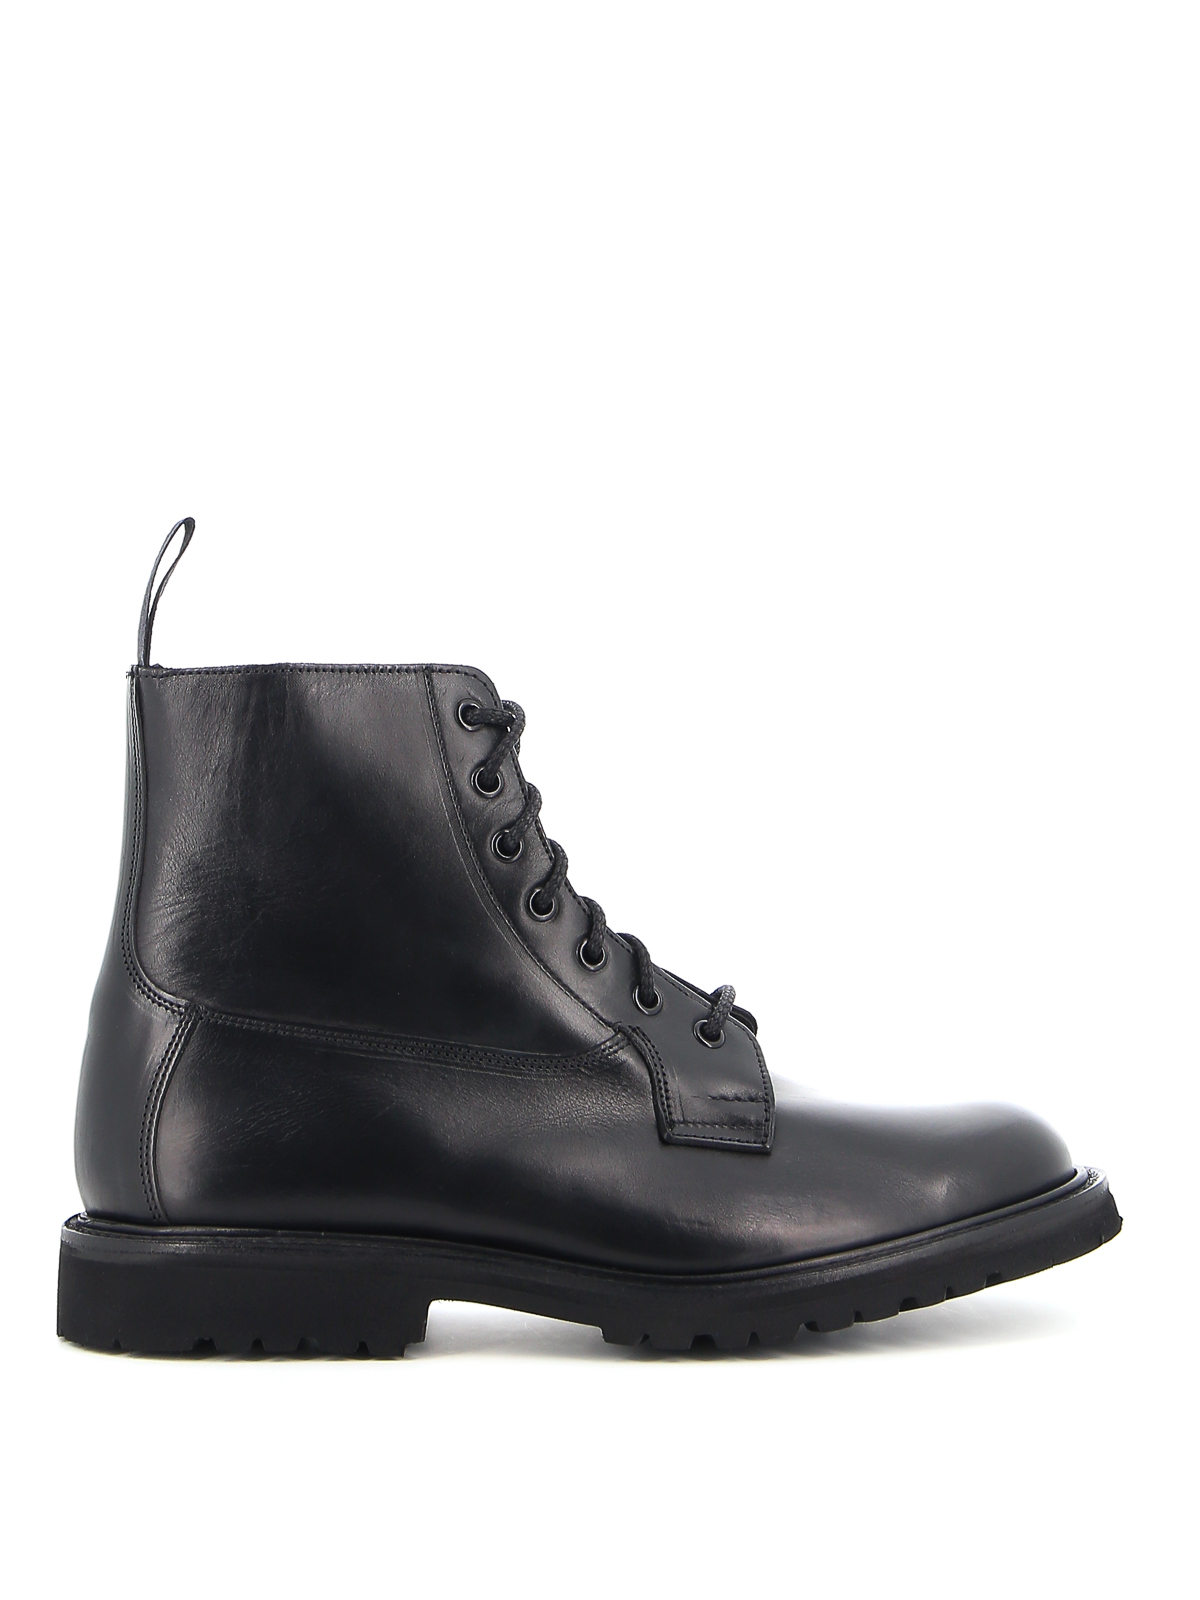 Tricker's Shoes BURFORD ANKLE BOOTS